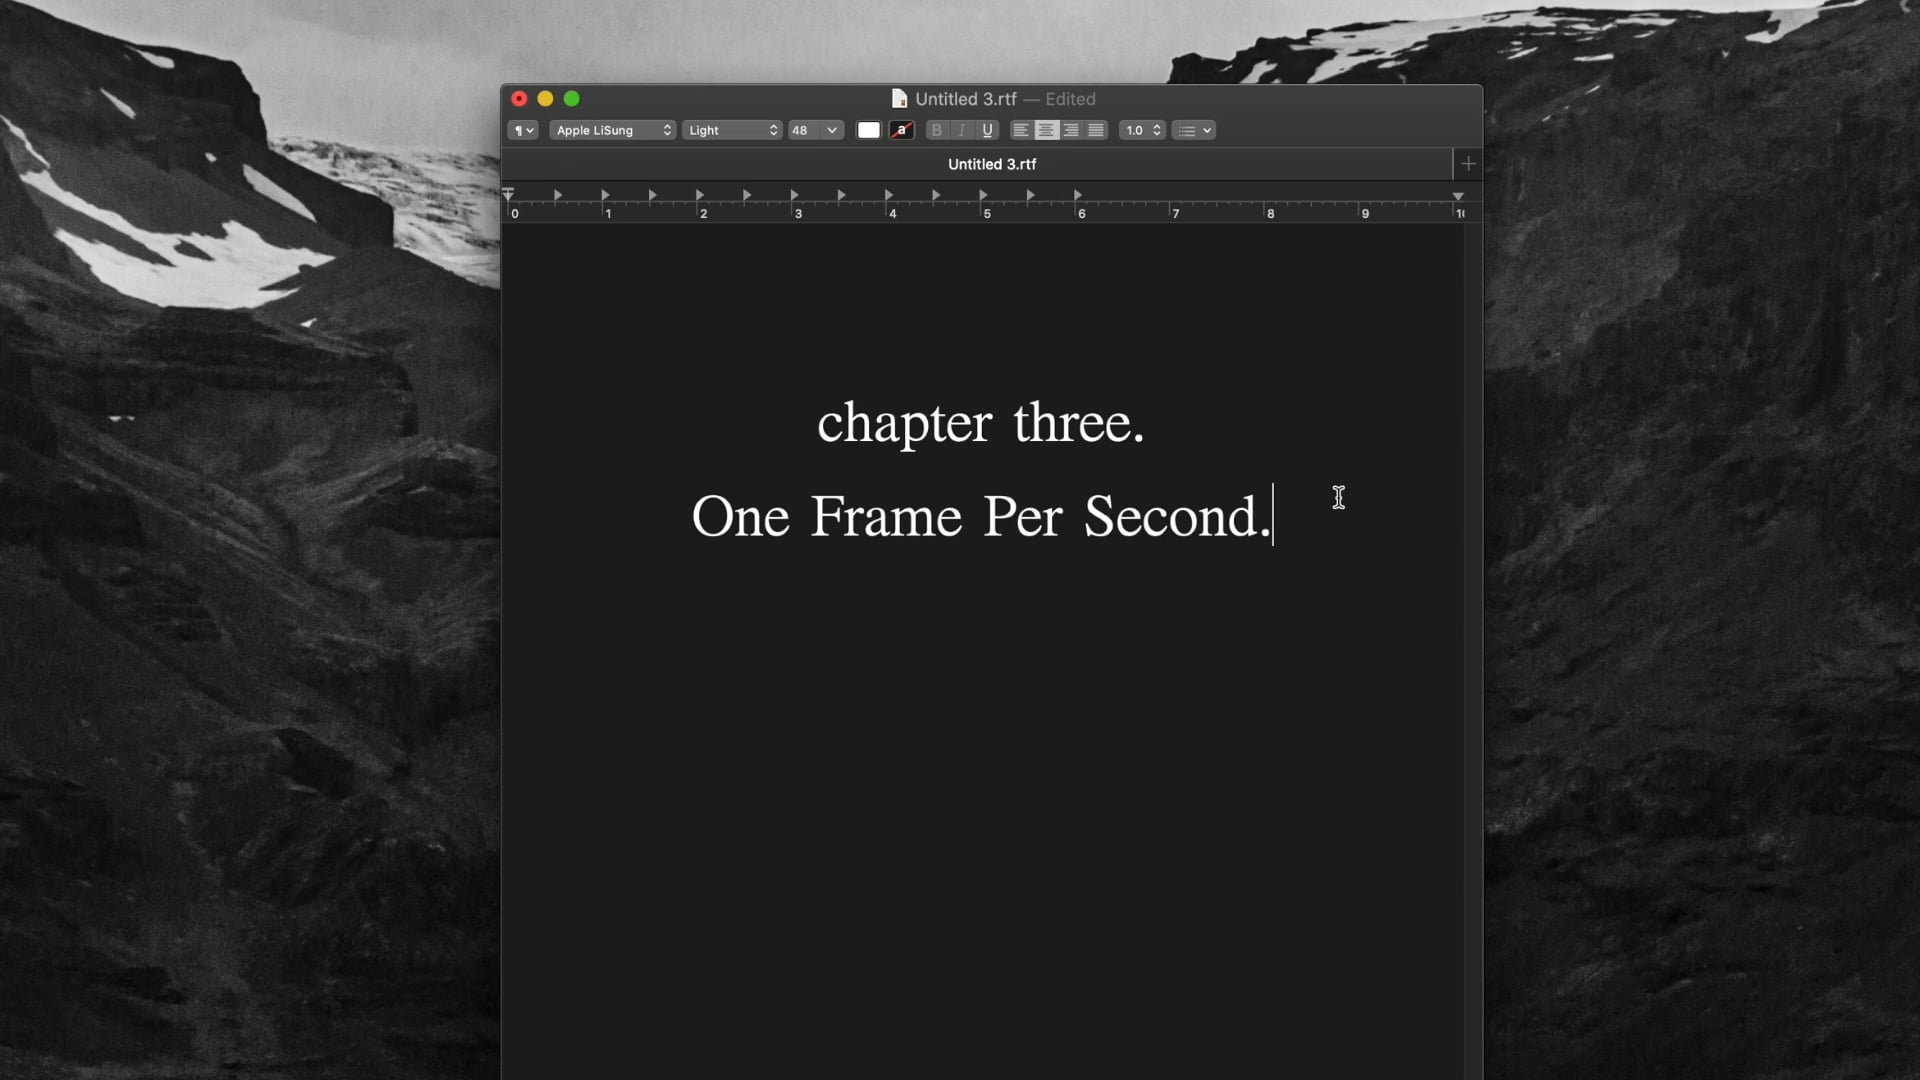 chapter three. One Frame Per Second